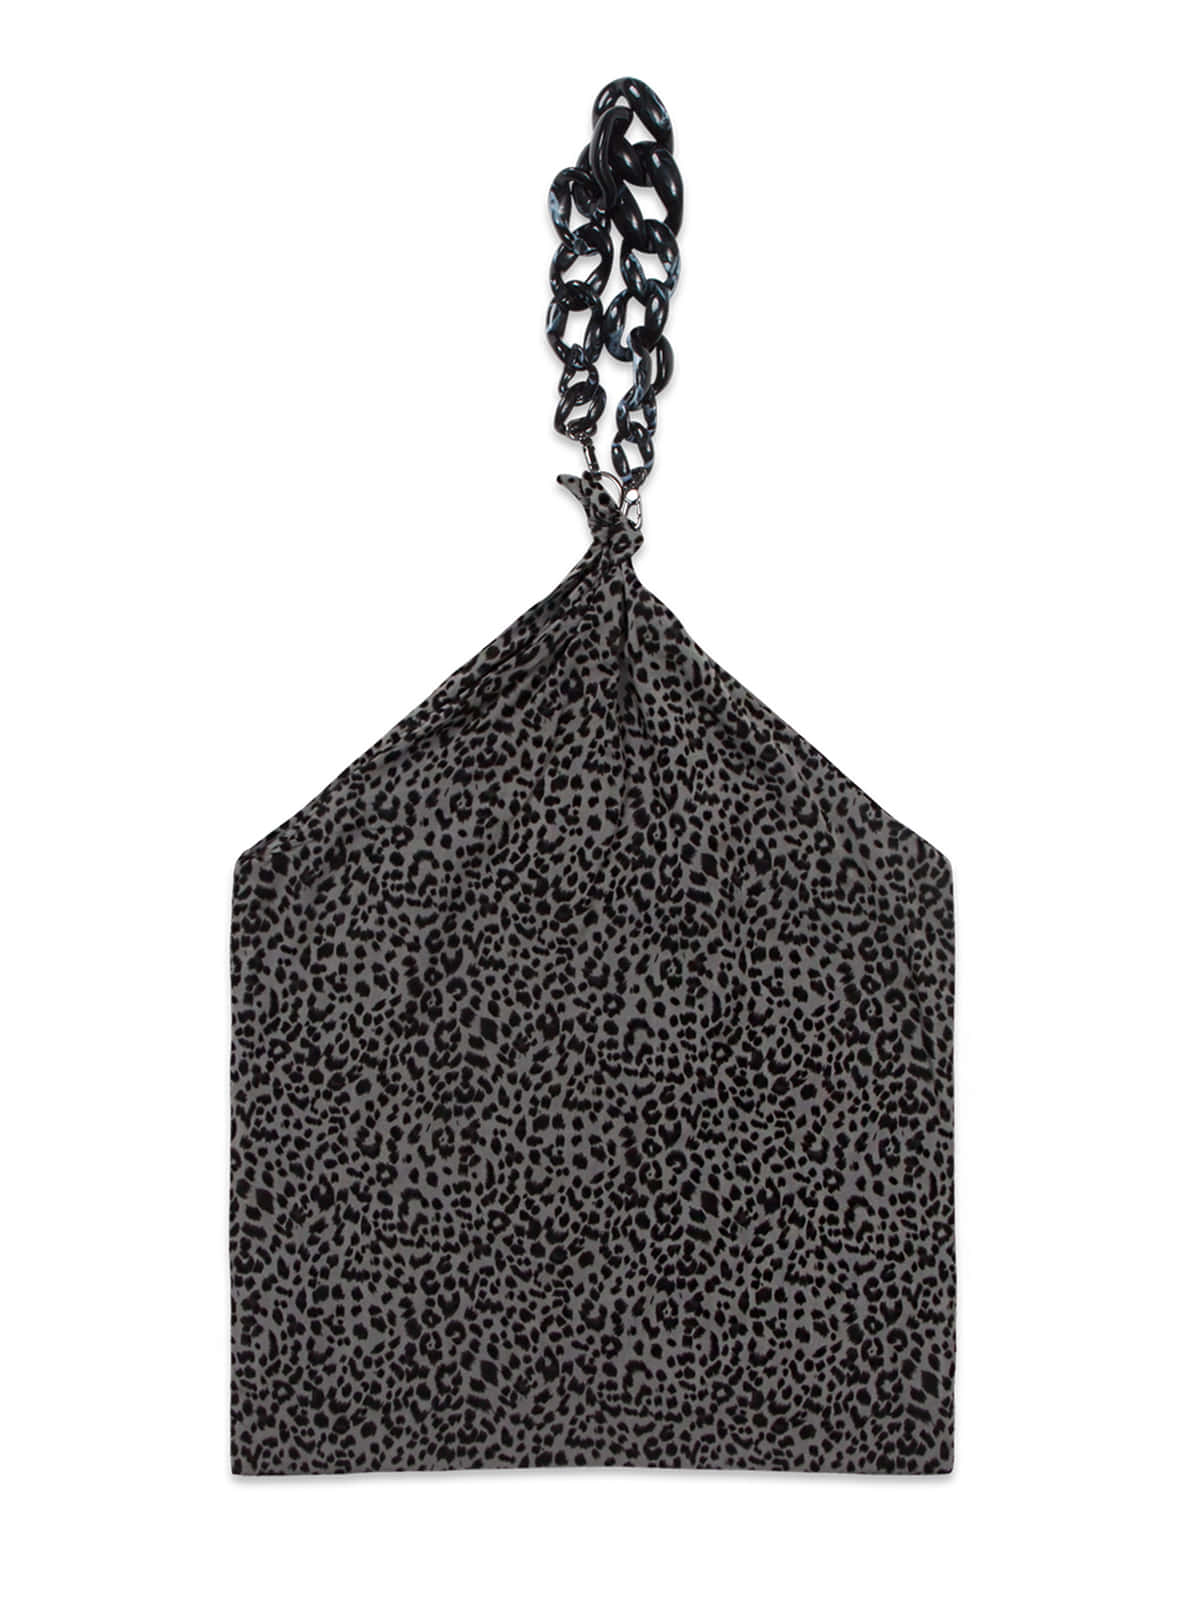 Leopard Chain Scarf Bag_Charcoal